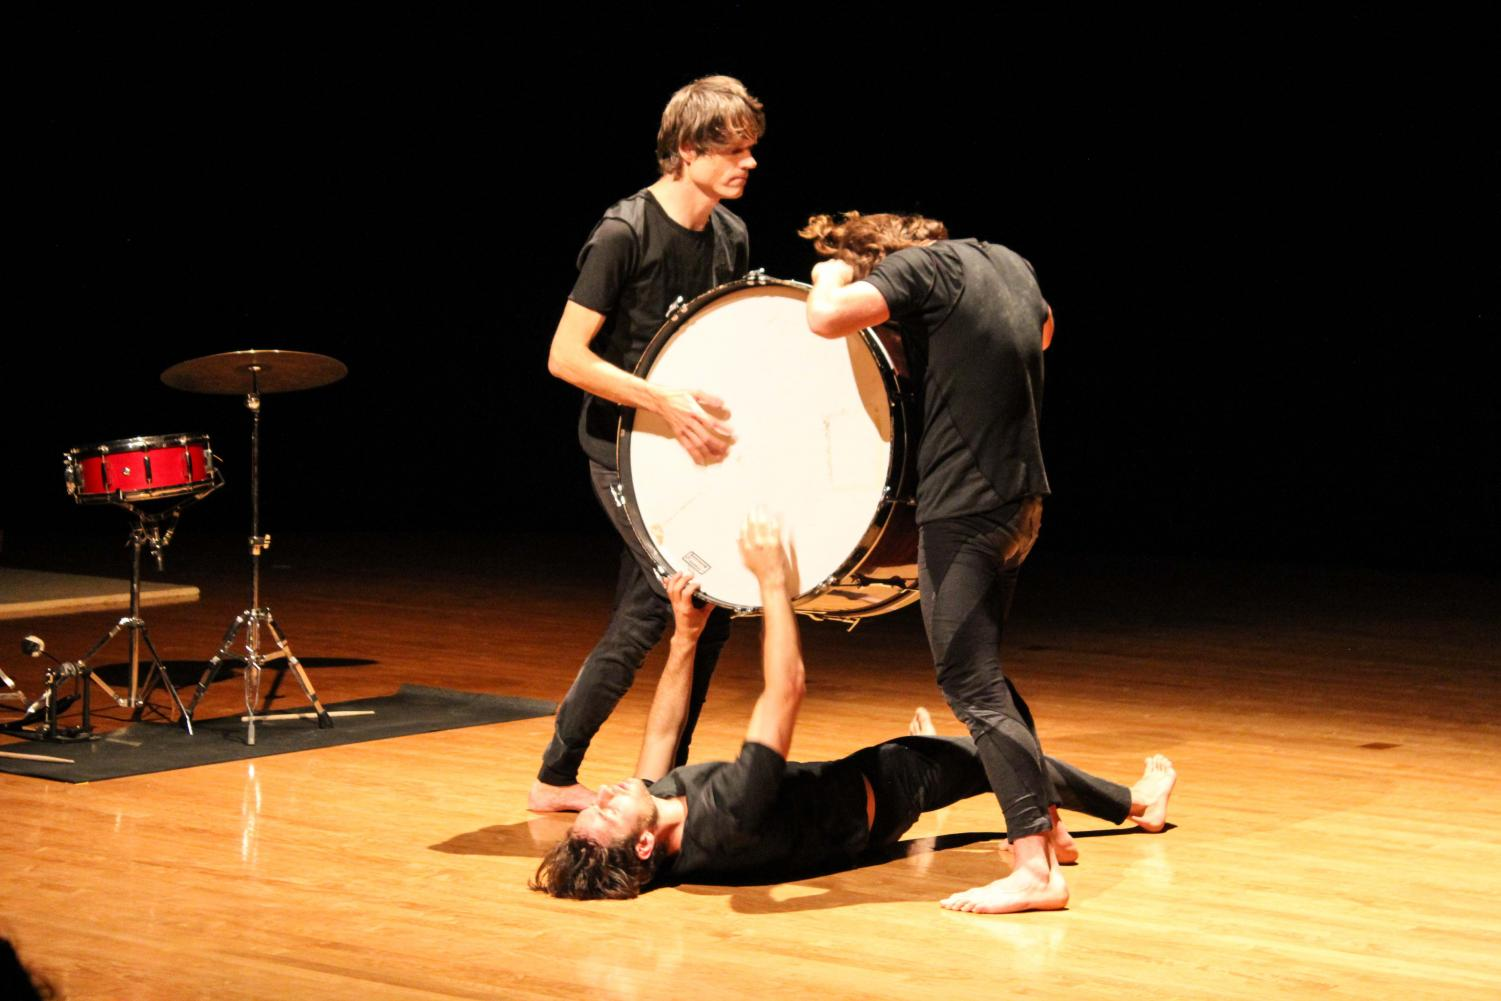 """The BOOMERANG Dance and Performance Project, featuring dancers Matty Davis and Adrian Galvin, performed the choreography of Kora Radella with finesse Sunday. Greg Saunier, OC '91 and one of the founders of internationally revered band Deerhoof, provided a percussion accompaniment to the dance. Drumbeat met heartbeat in Warner Main Space, where the performers showcased cultural critic Lewis Hyde's physical method of """"active forgetting."""""""